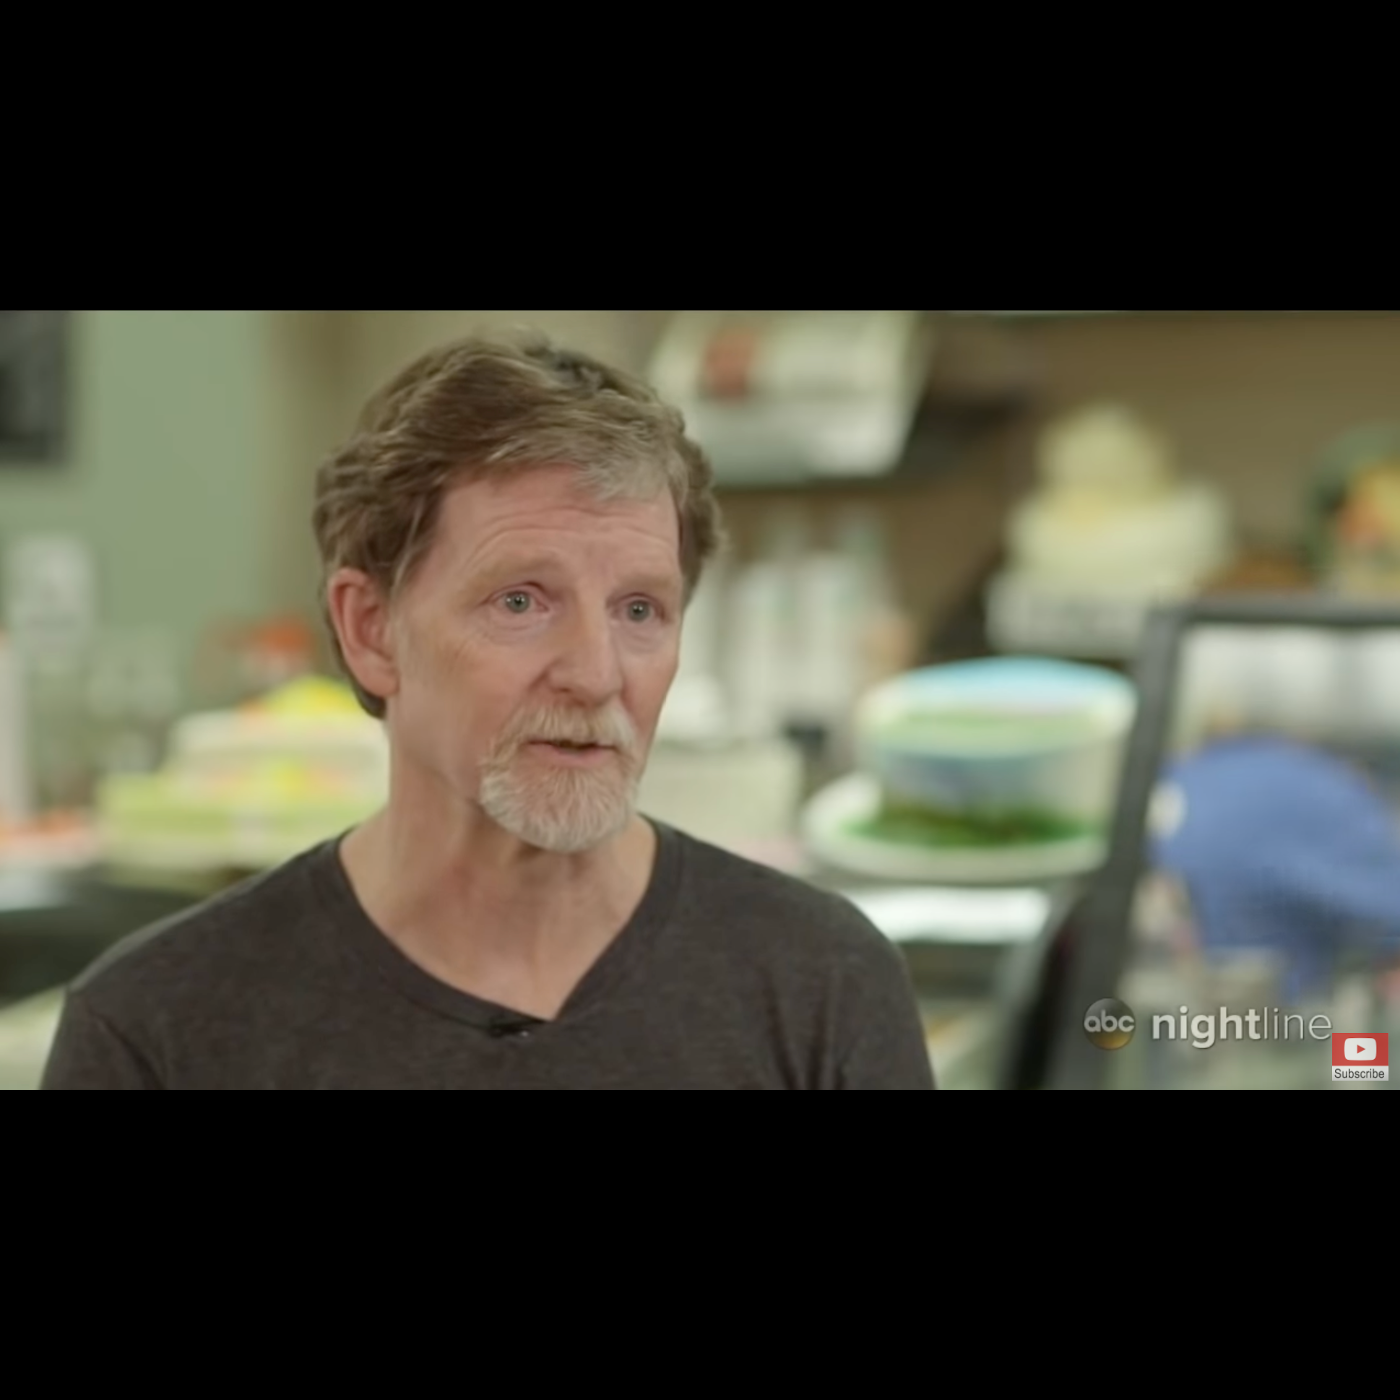 Ep. 379 - A Christian Baker Finally Got Punished for His Anti-Trans Bigotry